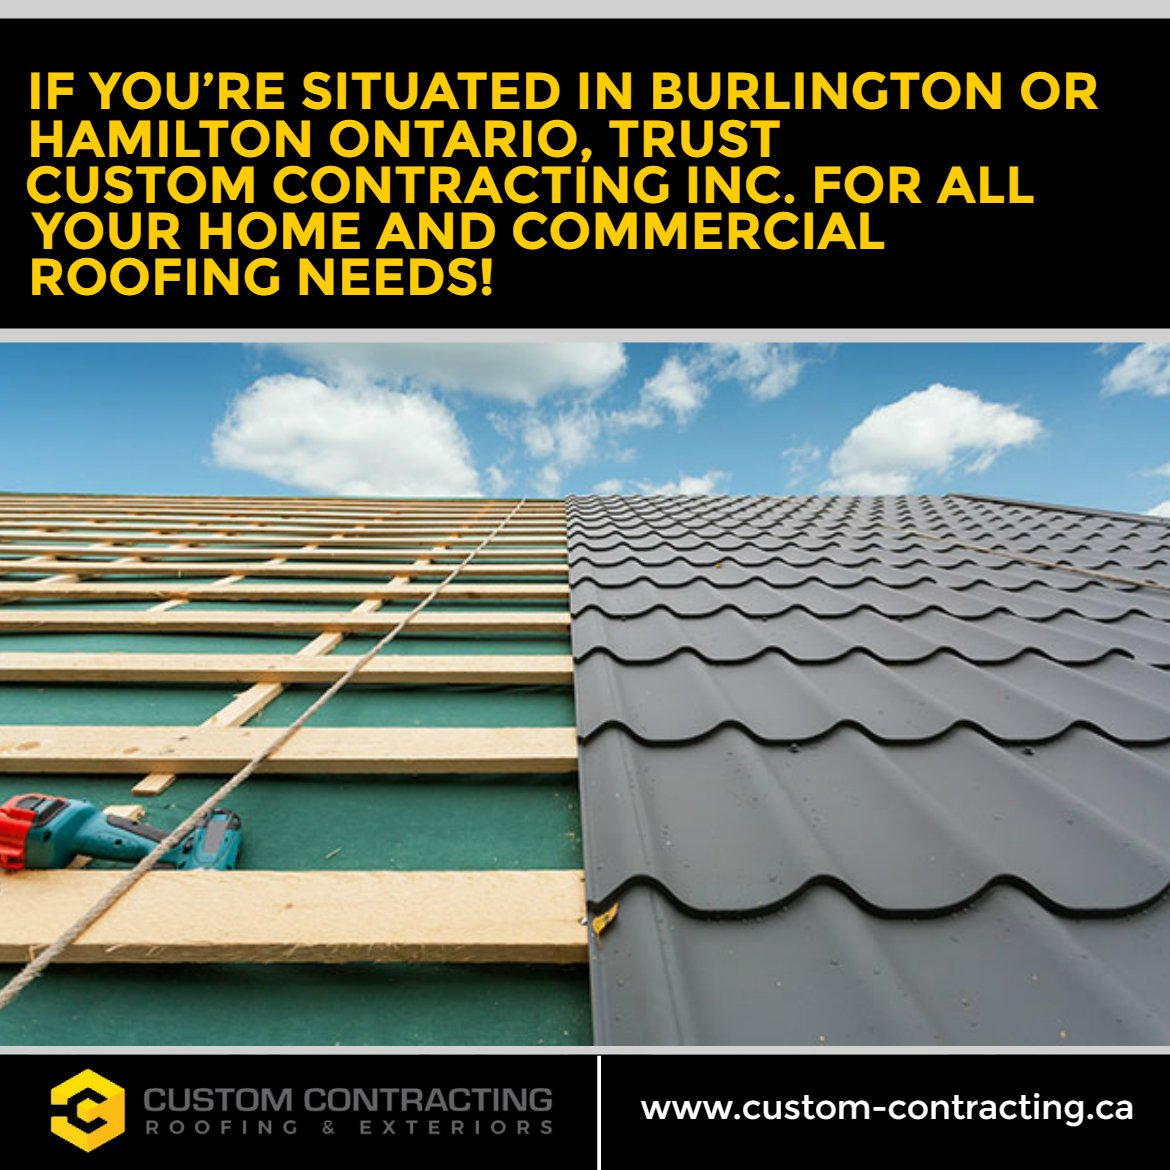 Hamilton ontario trust custom contracting inc for all your home and commercial roofing needs http www custom contracting ca customcontracting